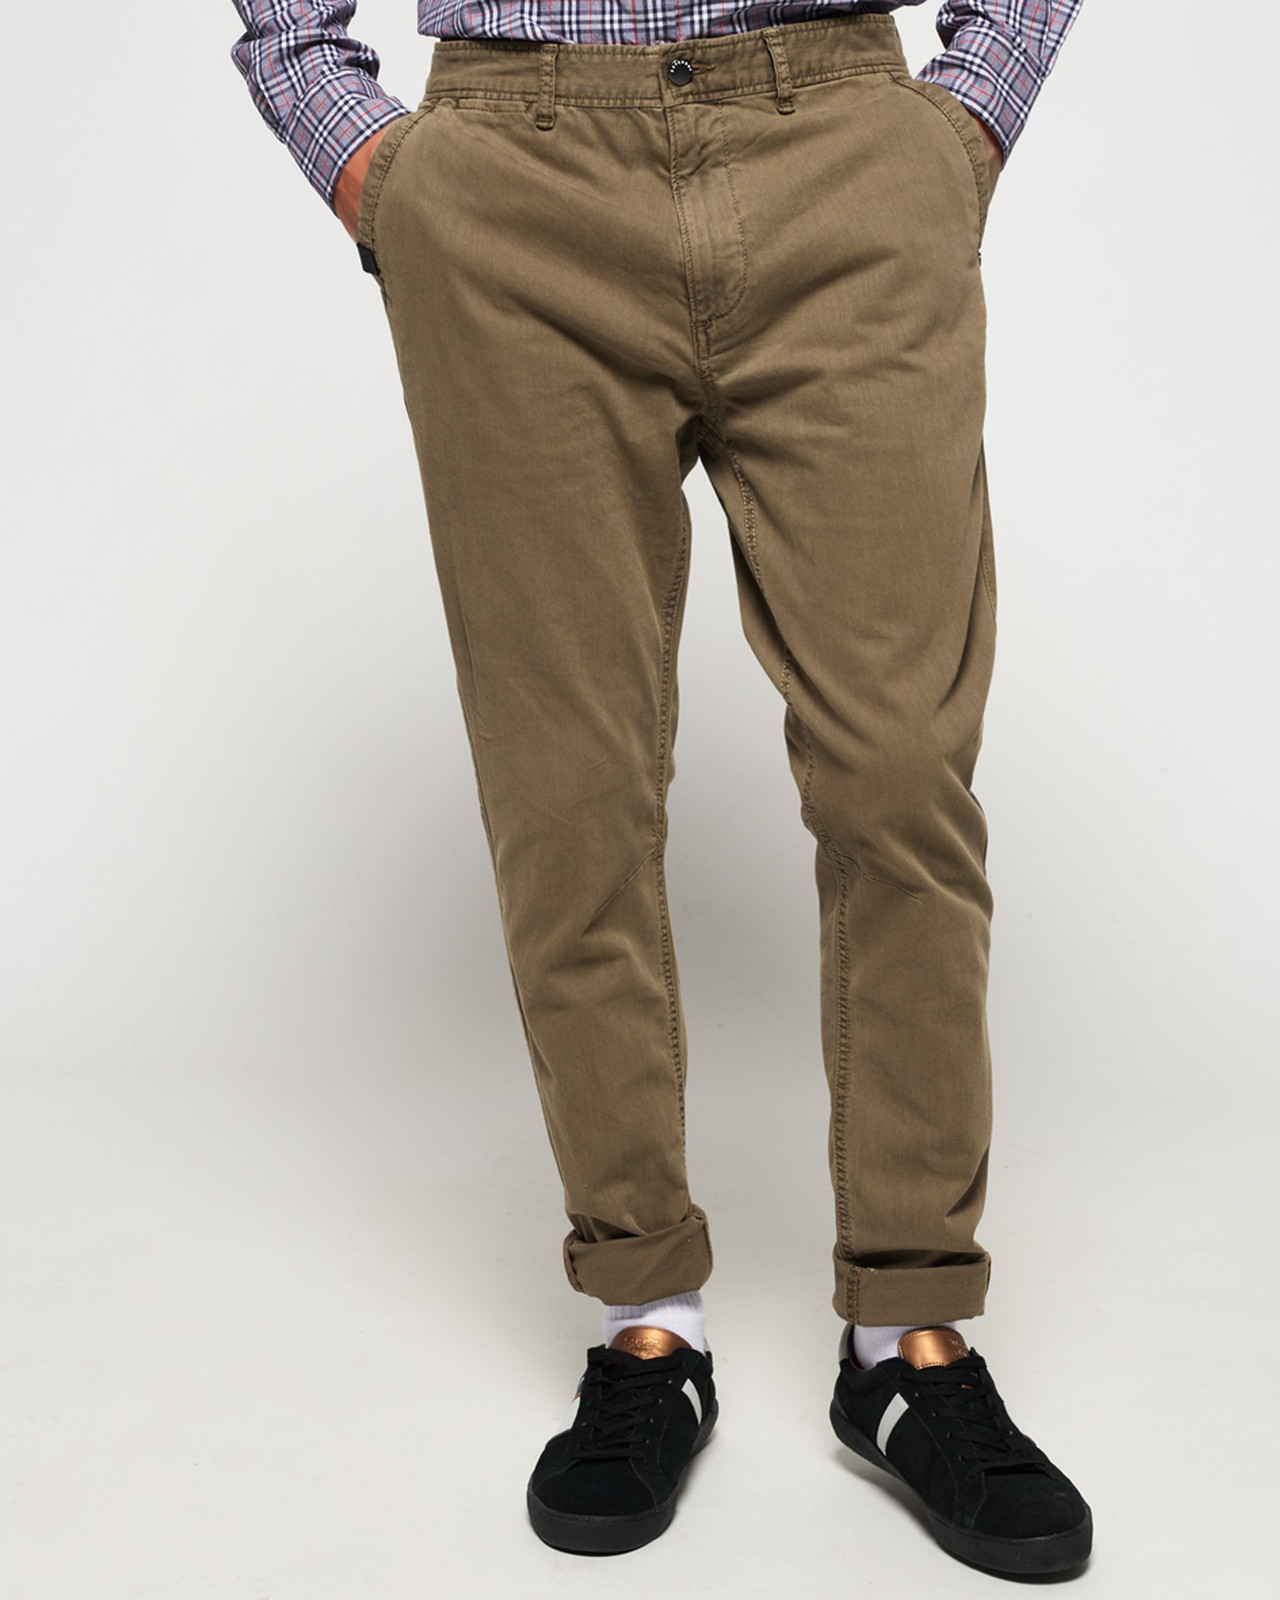 Superdry Mens Surplus Goods Chino Trousers Brown Chino Pants 0